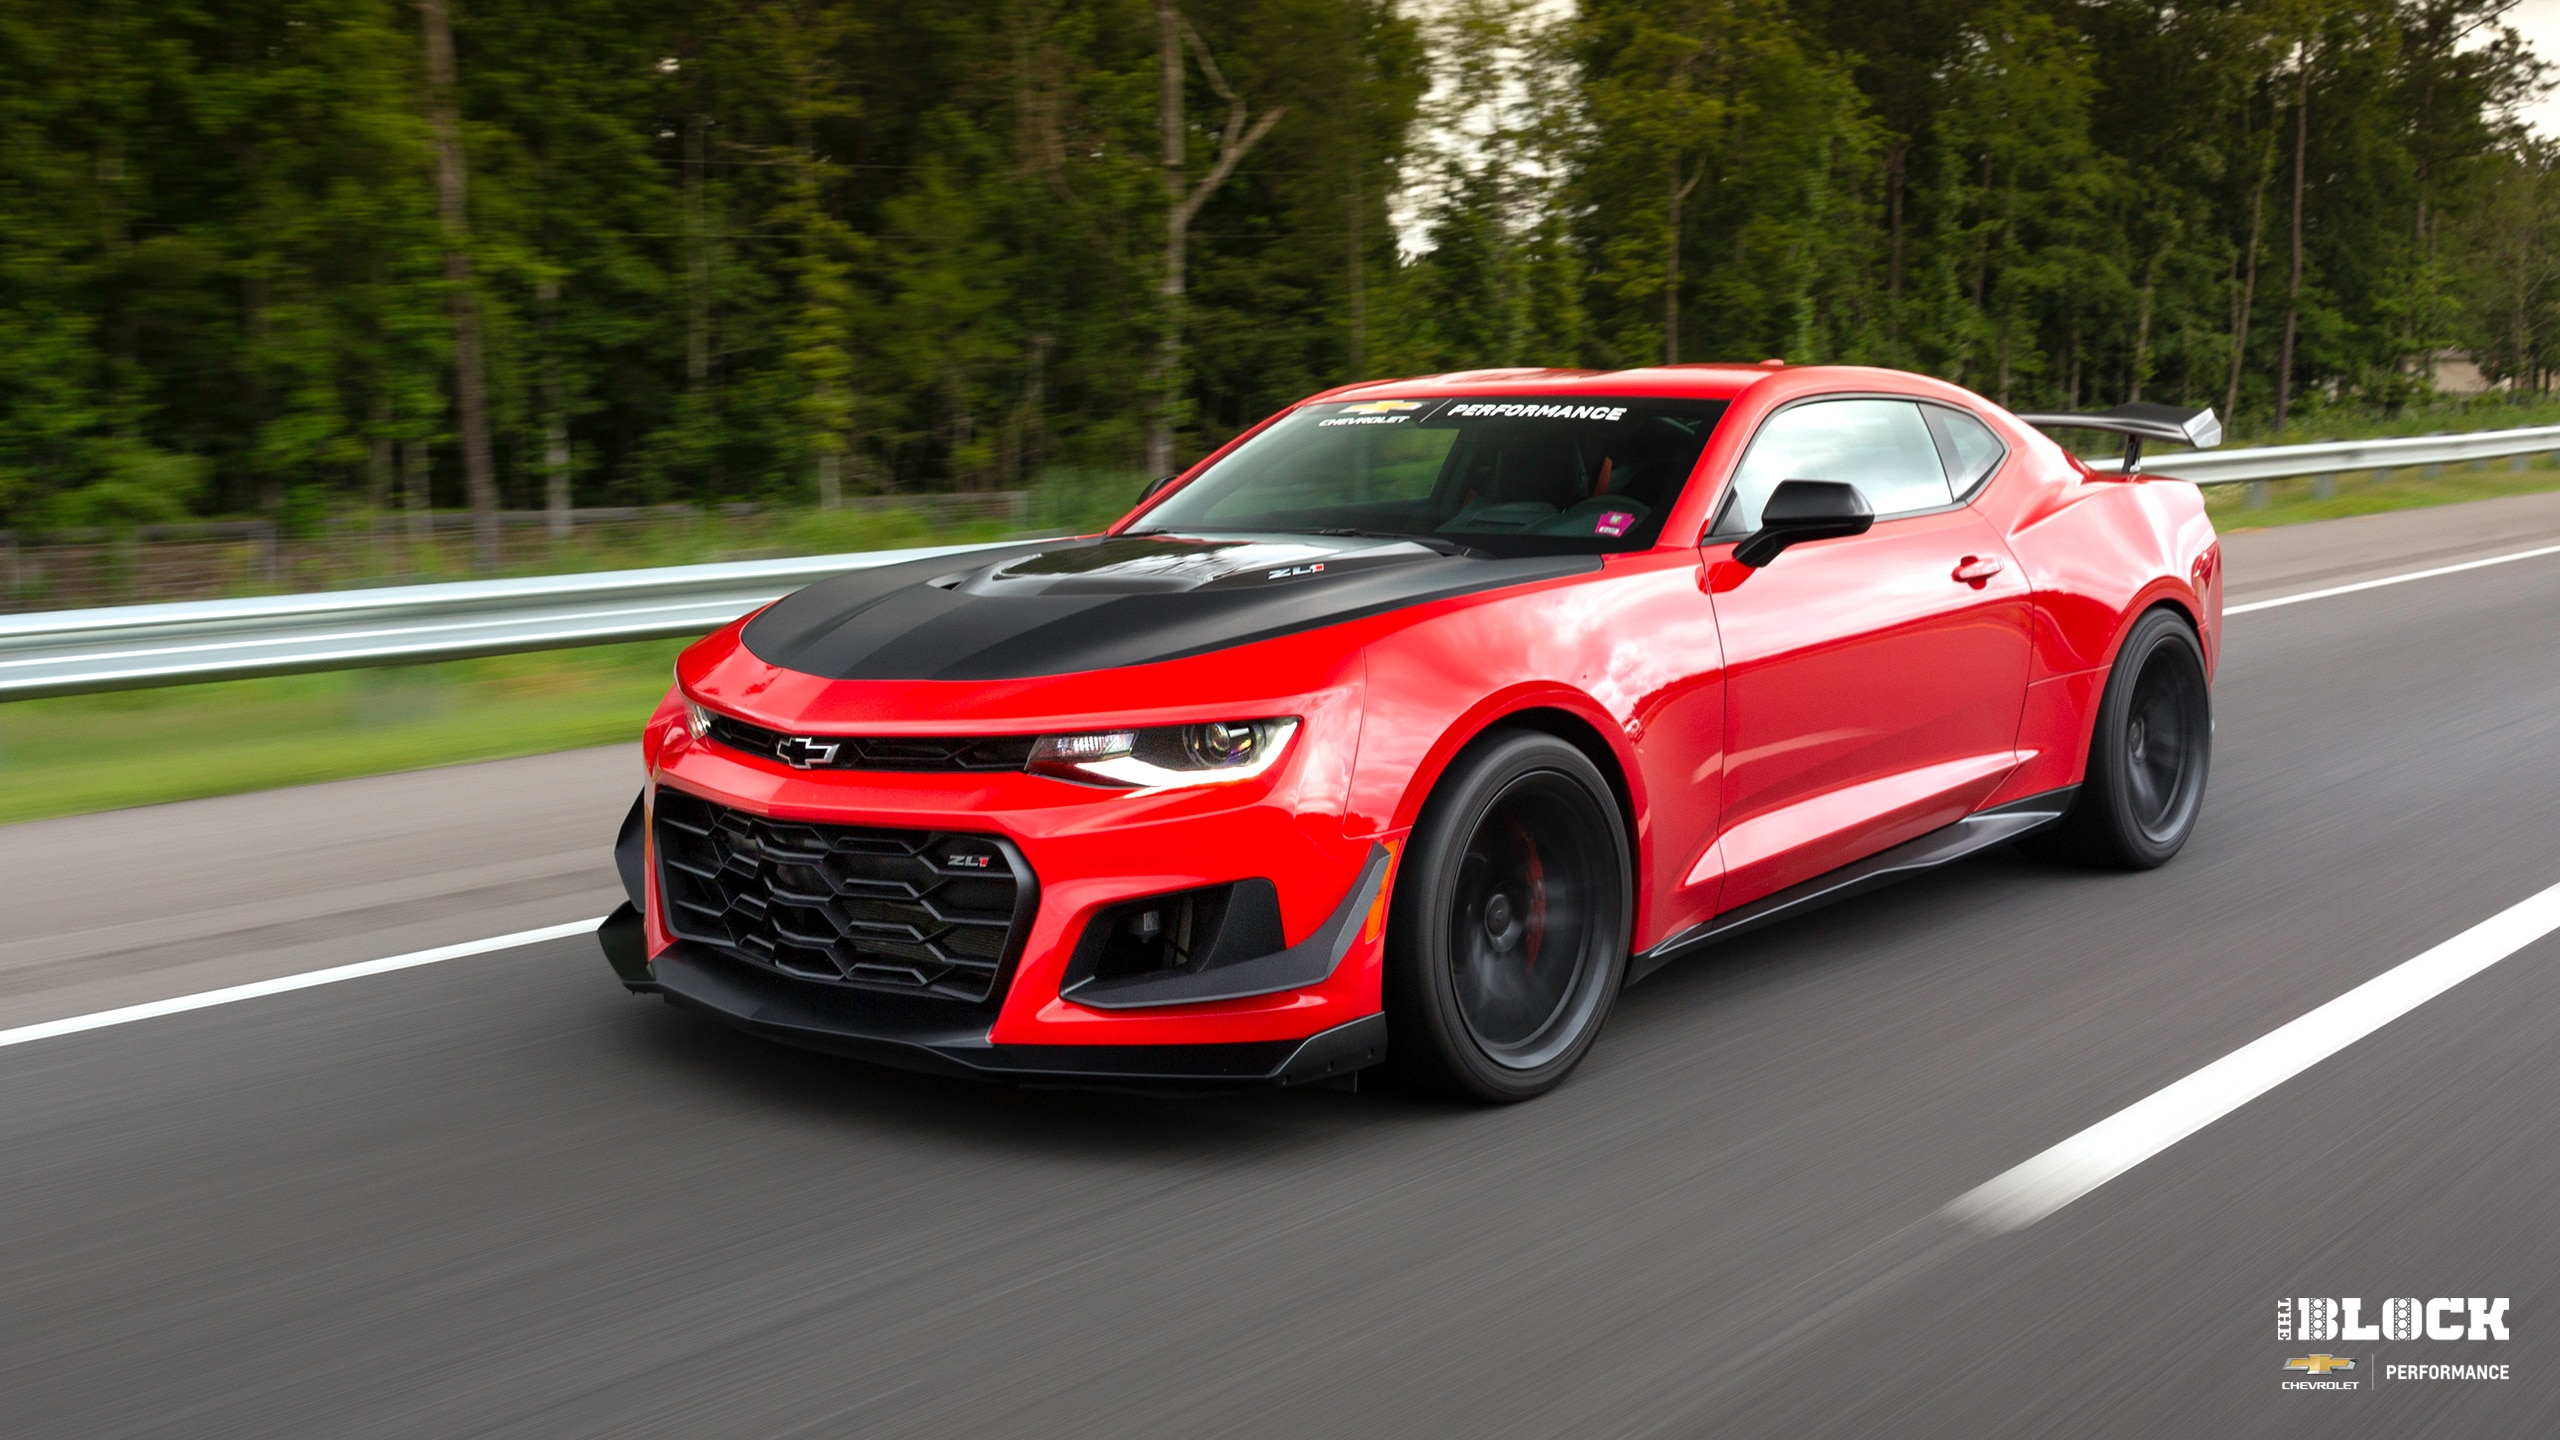 Wallpaper Wednesday 2018 Camaro Zl1 1le